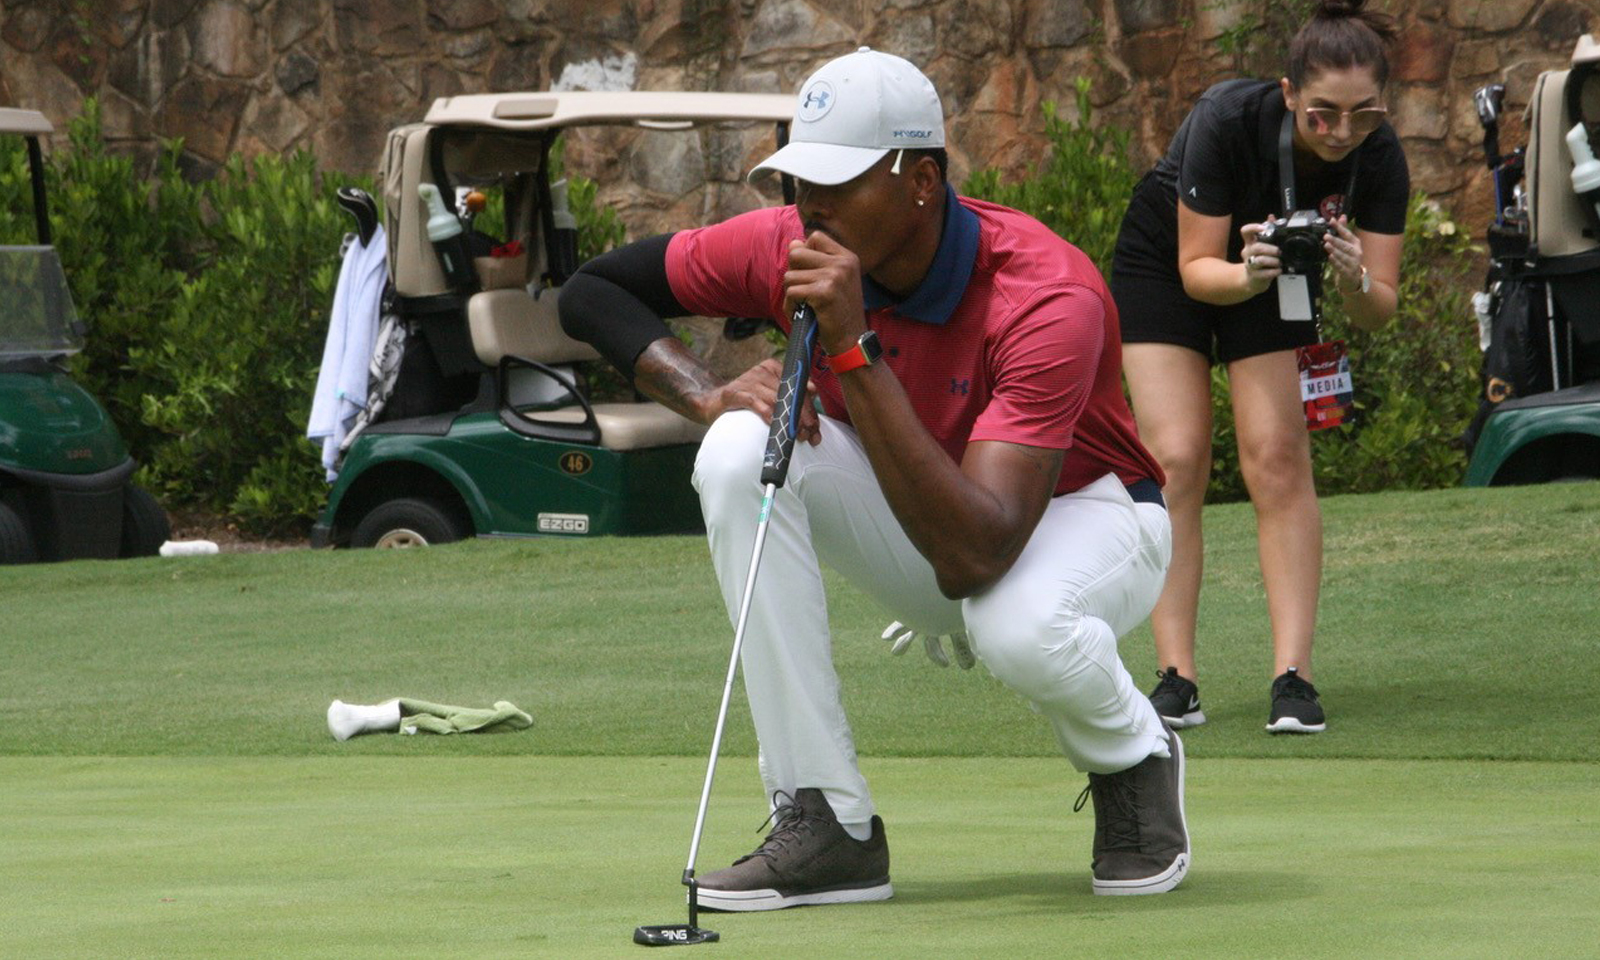 NBA Player Kent Bazemore Celebrity Golf Classic benefitting ARMS Foundation at Dunwoody Country Club